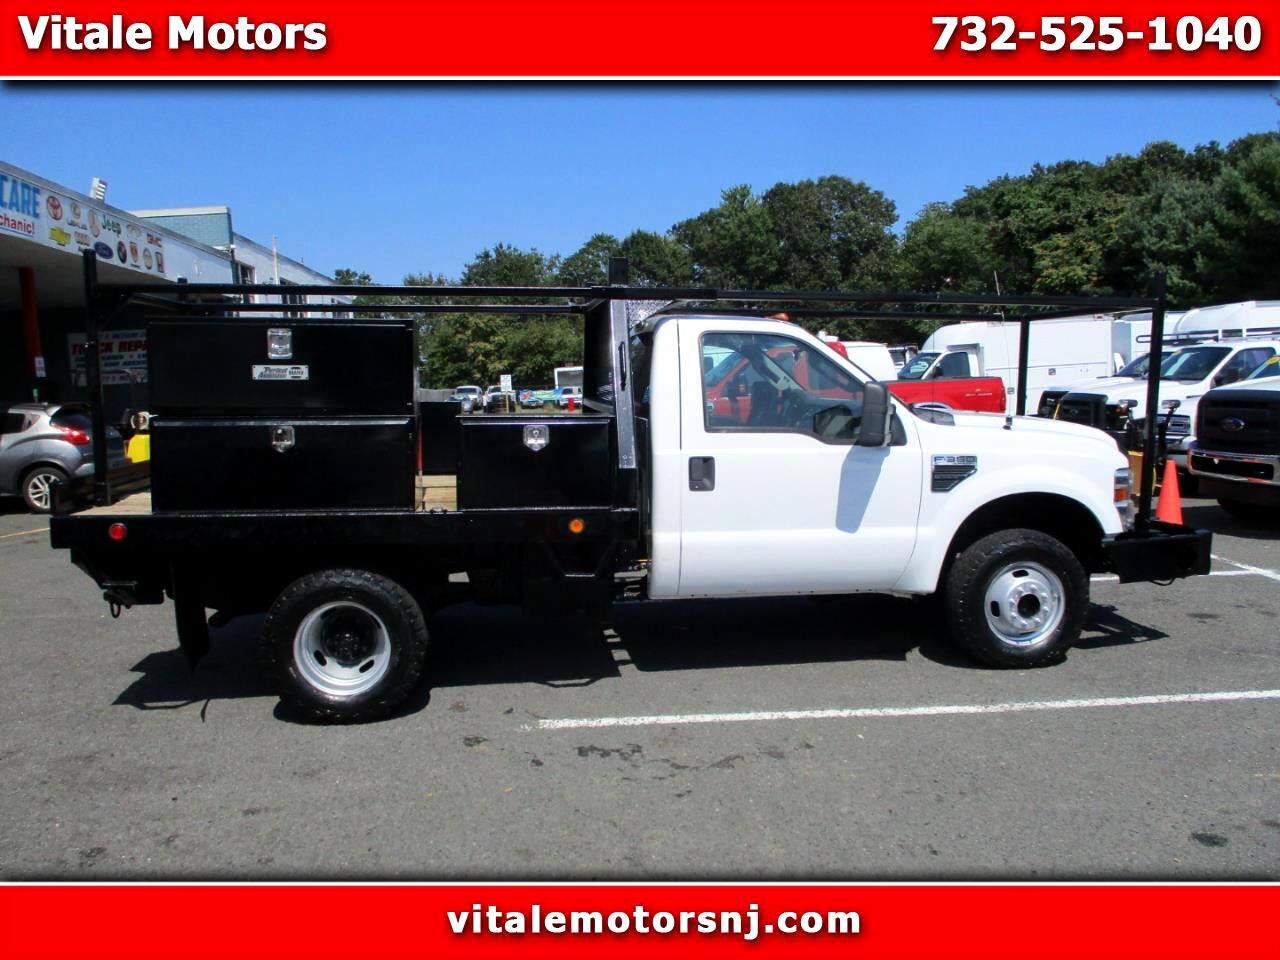 2010 Ford F-350 SD 9 FOOT FLAT DECK W/ BOXES & RACK 4X4